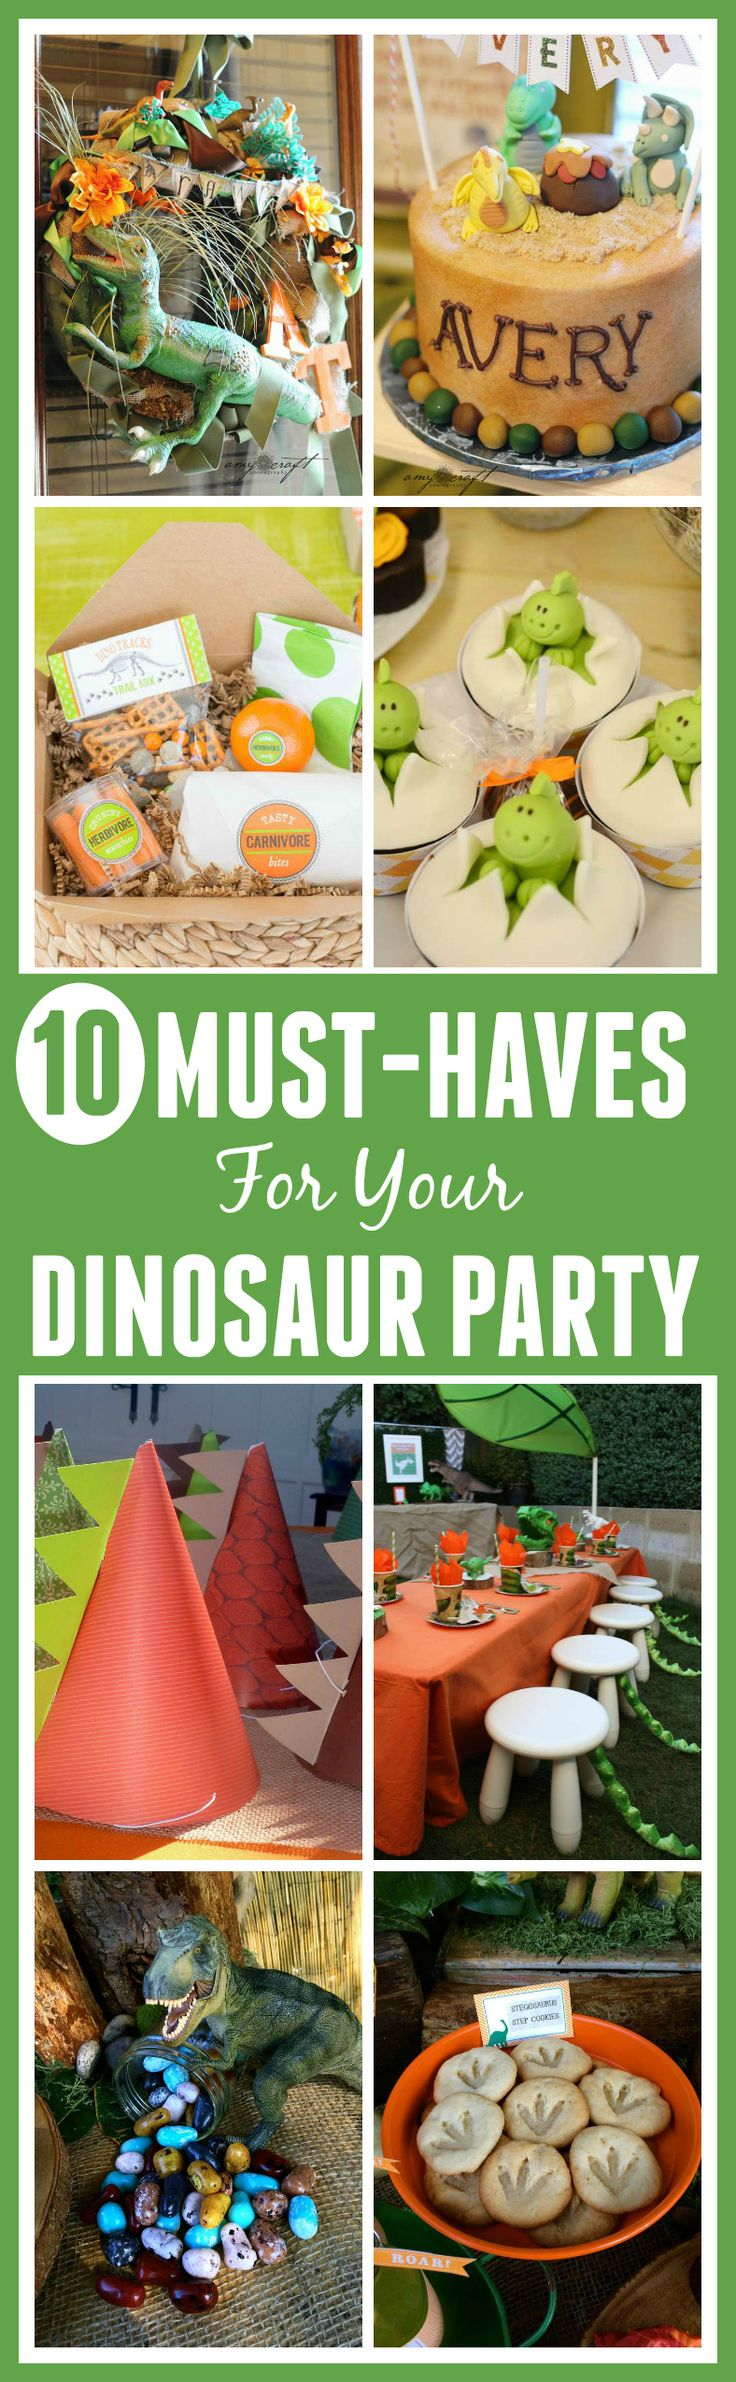 10 Must-Haves for your Dinosaur Party | CatchMyParty.com